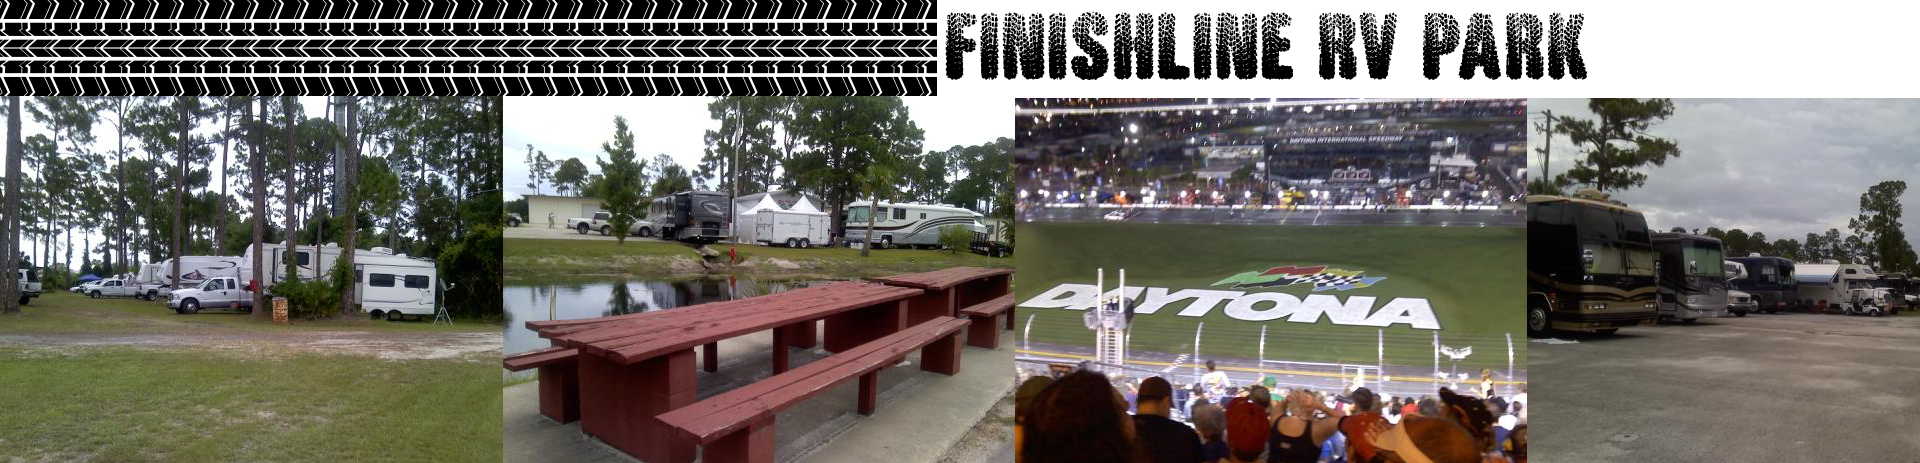 finishline rv park